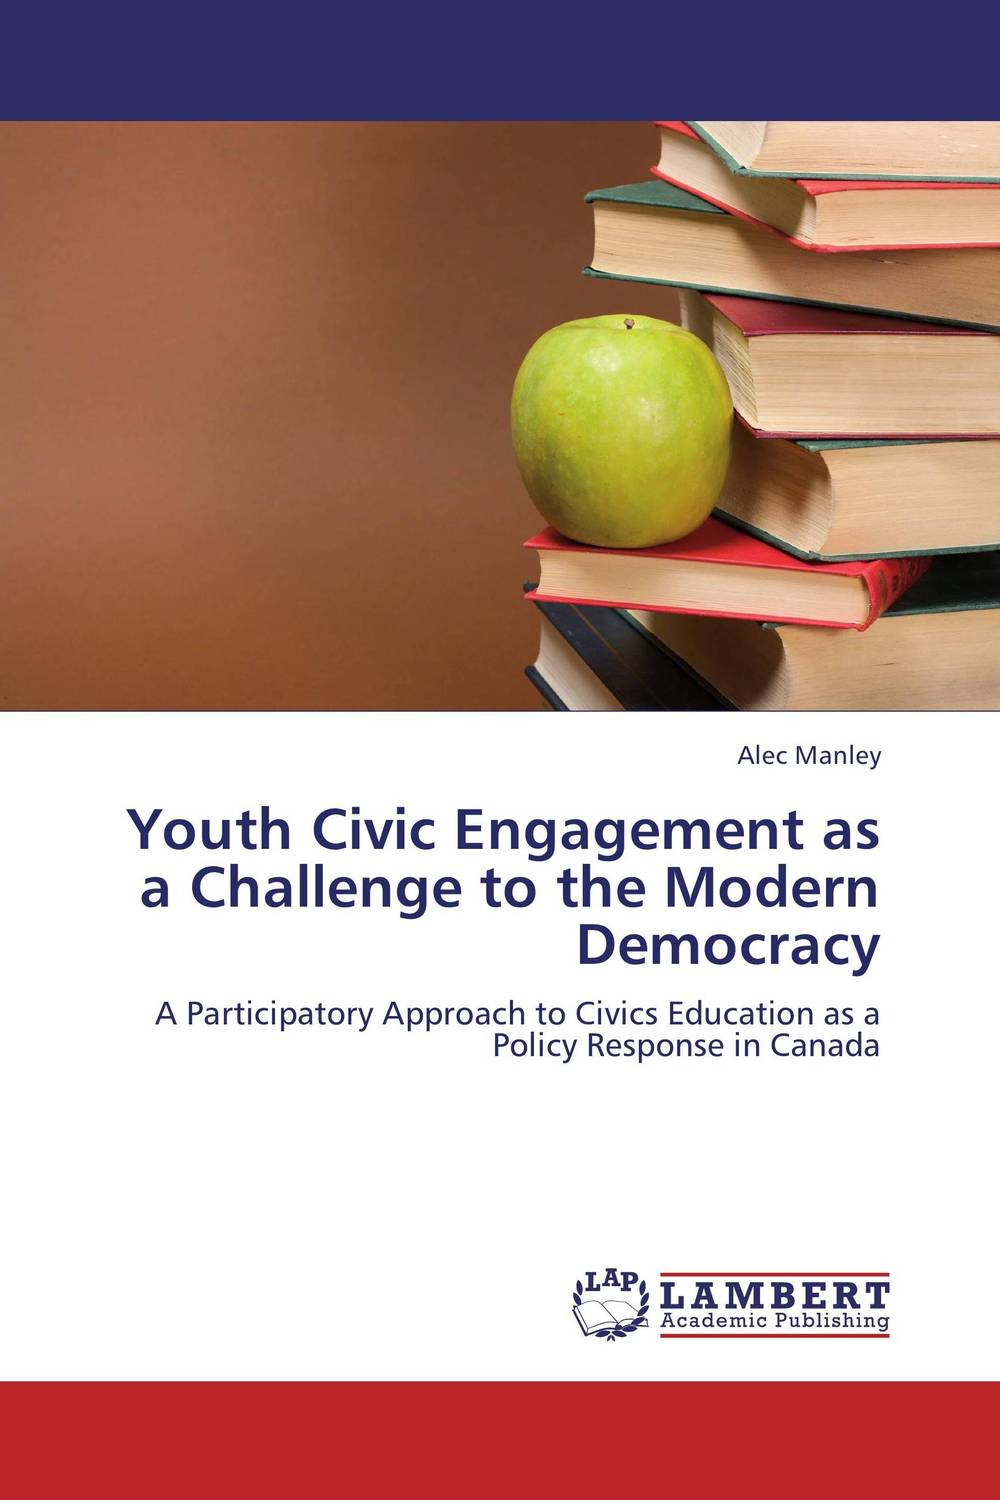 Youth Civic Engagement as a Challenge to the Modern Democracy hannell across canada – resources